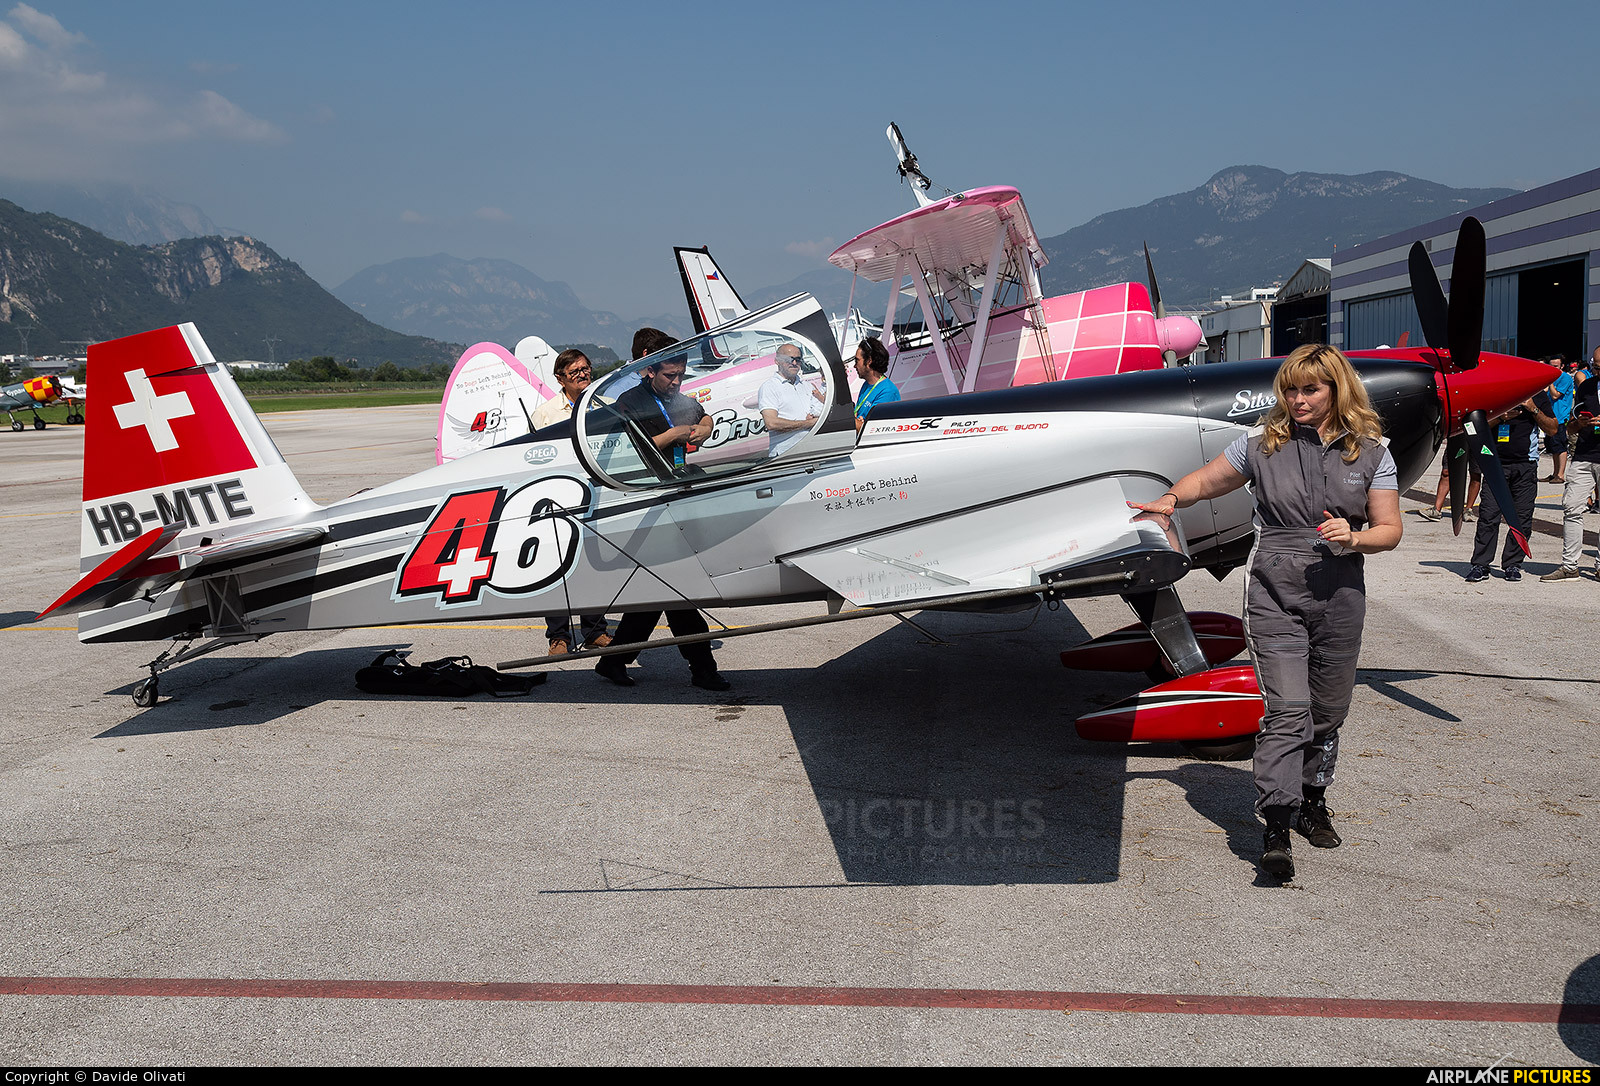 Private HB-MTE aircraft at Trento - Mattarello